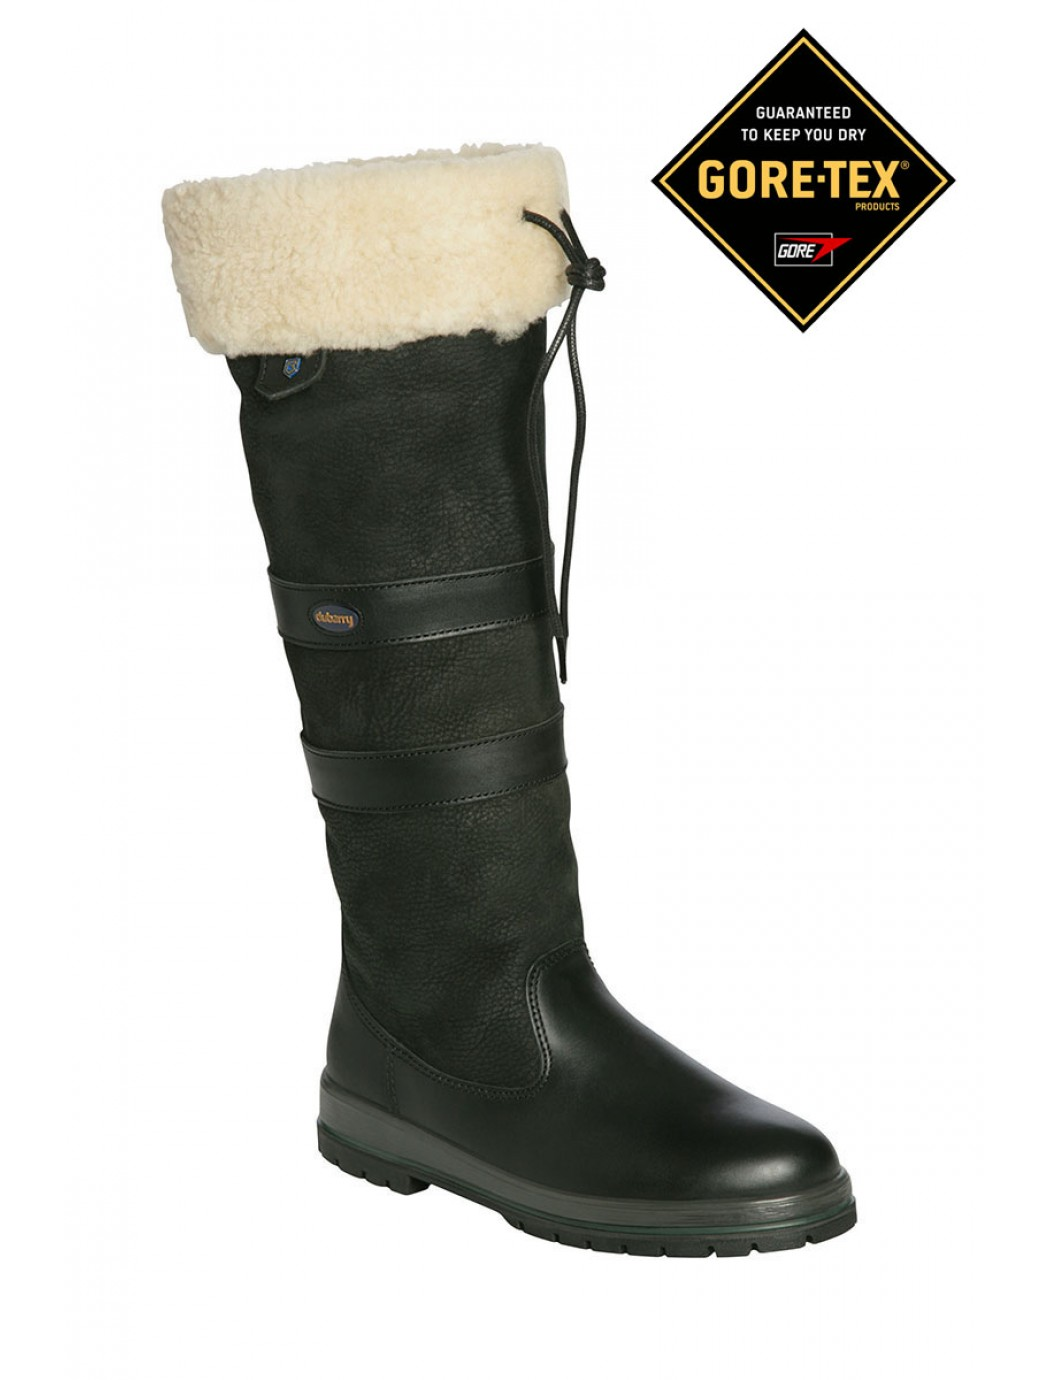 kilternan-country-boots-black 1 1